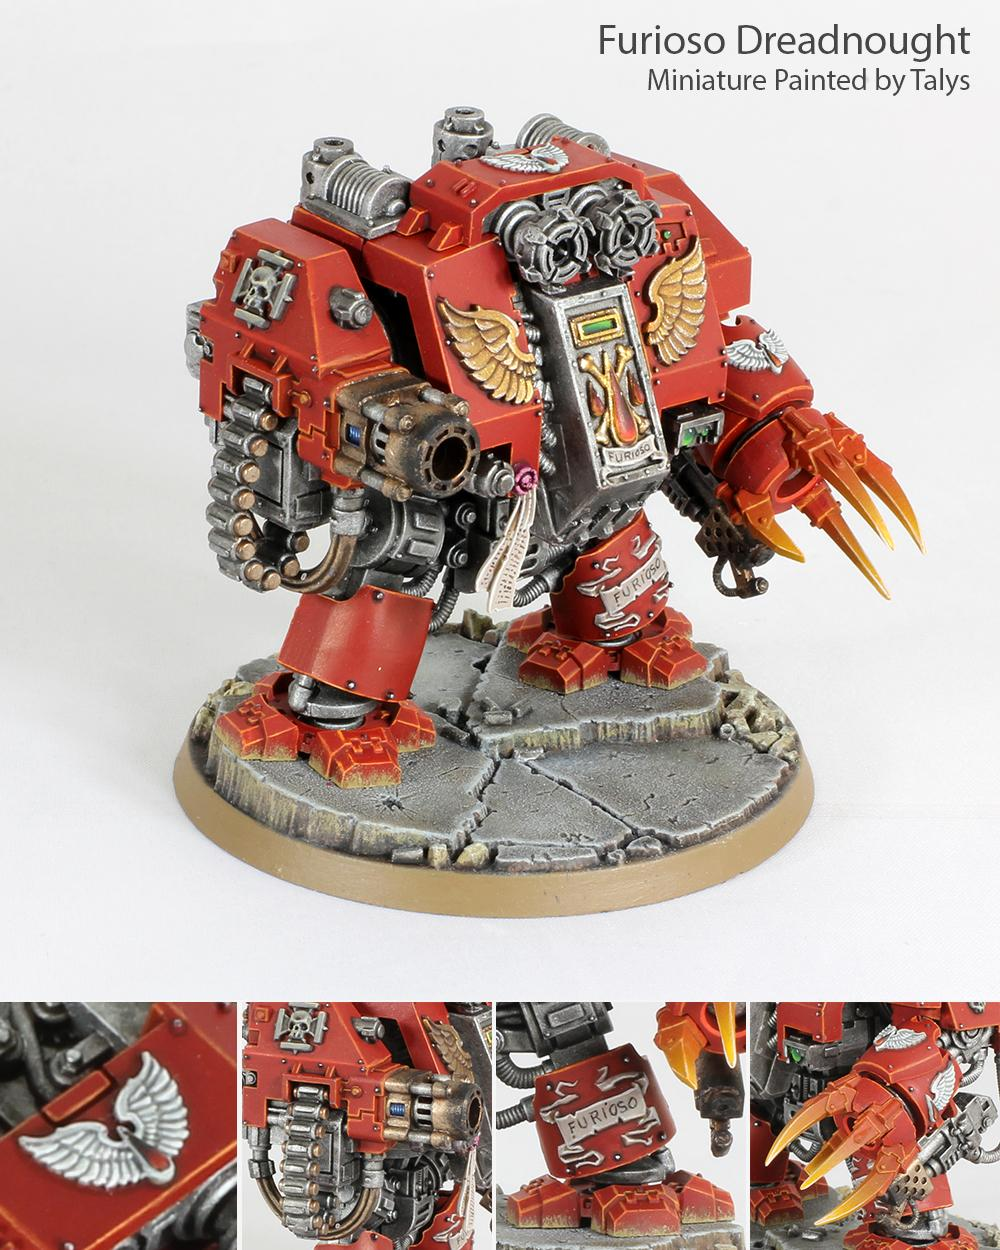 Blood Angels, Dreadnought, Furioso, Space Marines, Warhammer 40,000